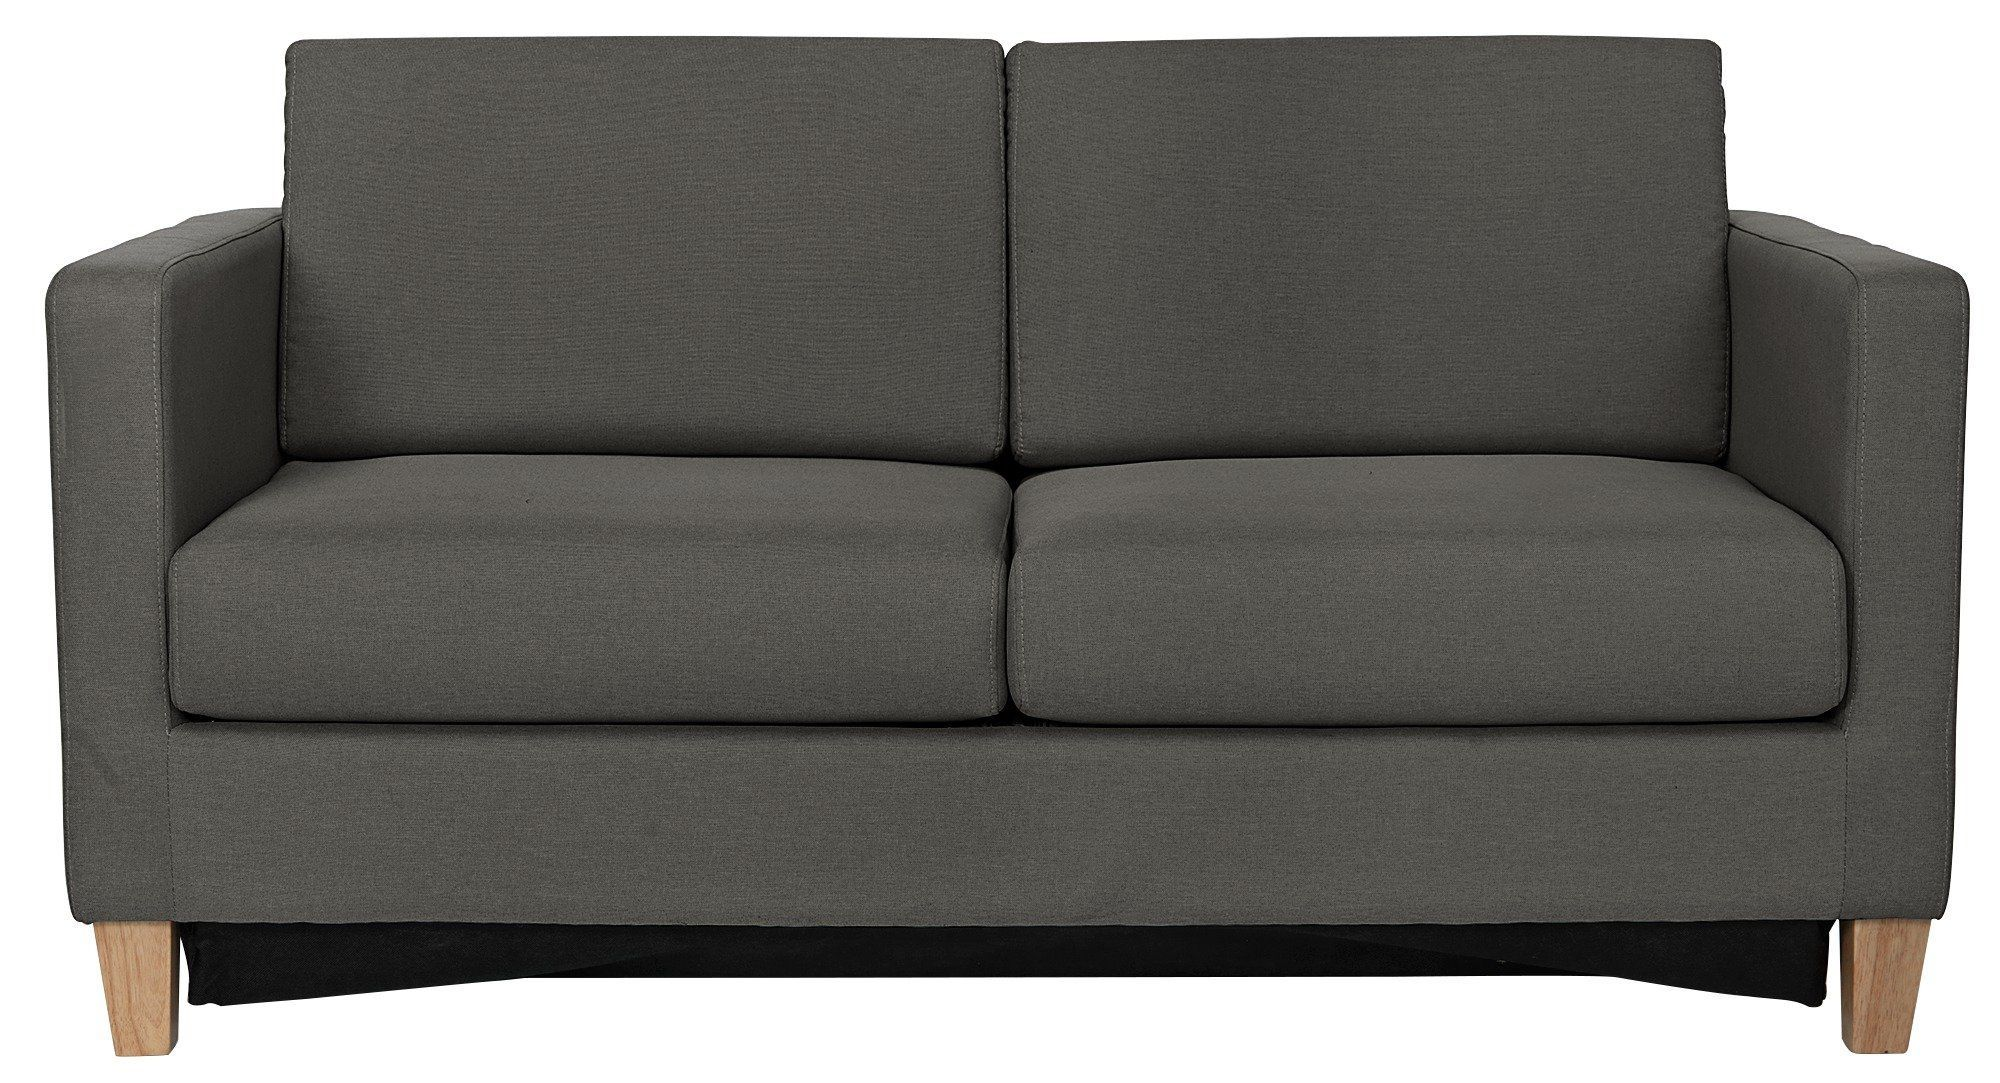 Lovely Couches For Free In 2020 Cheap Sofa Beds Fabric Sofa Bed